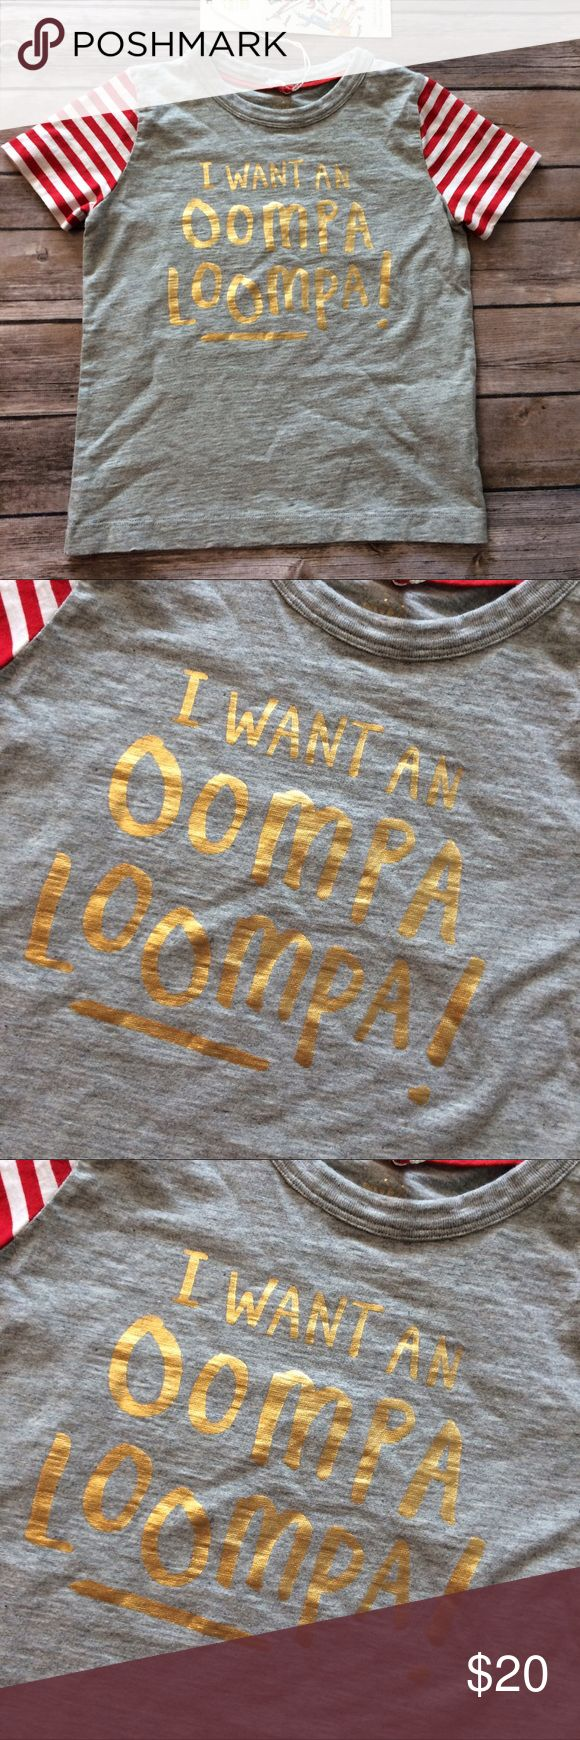 "Mini Boden Oompa Loompa shirt size 2-3 years Gray shirt with gold metallic lettering and red and white striped short sleeves. ""I want an Oompa Loompa."" Found in the girls' section but unisex imo. Tag size 2-3 years. Part of the Roald Dahl collection. Smoke free dog friendly home. Always a bundle discount in my closet. Mini Boden Shirts & Tops"